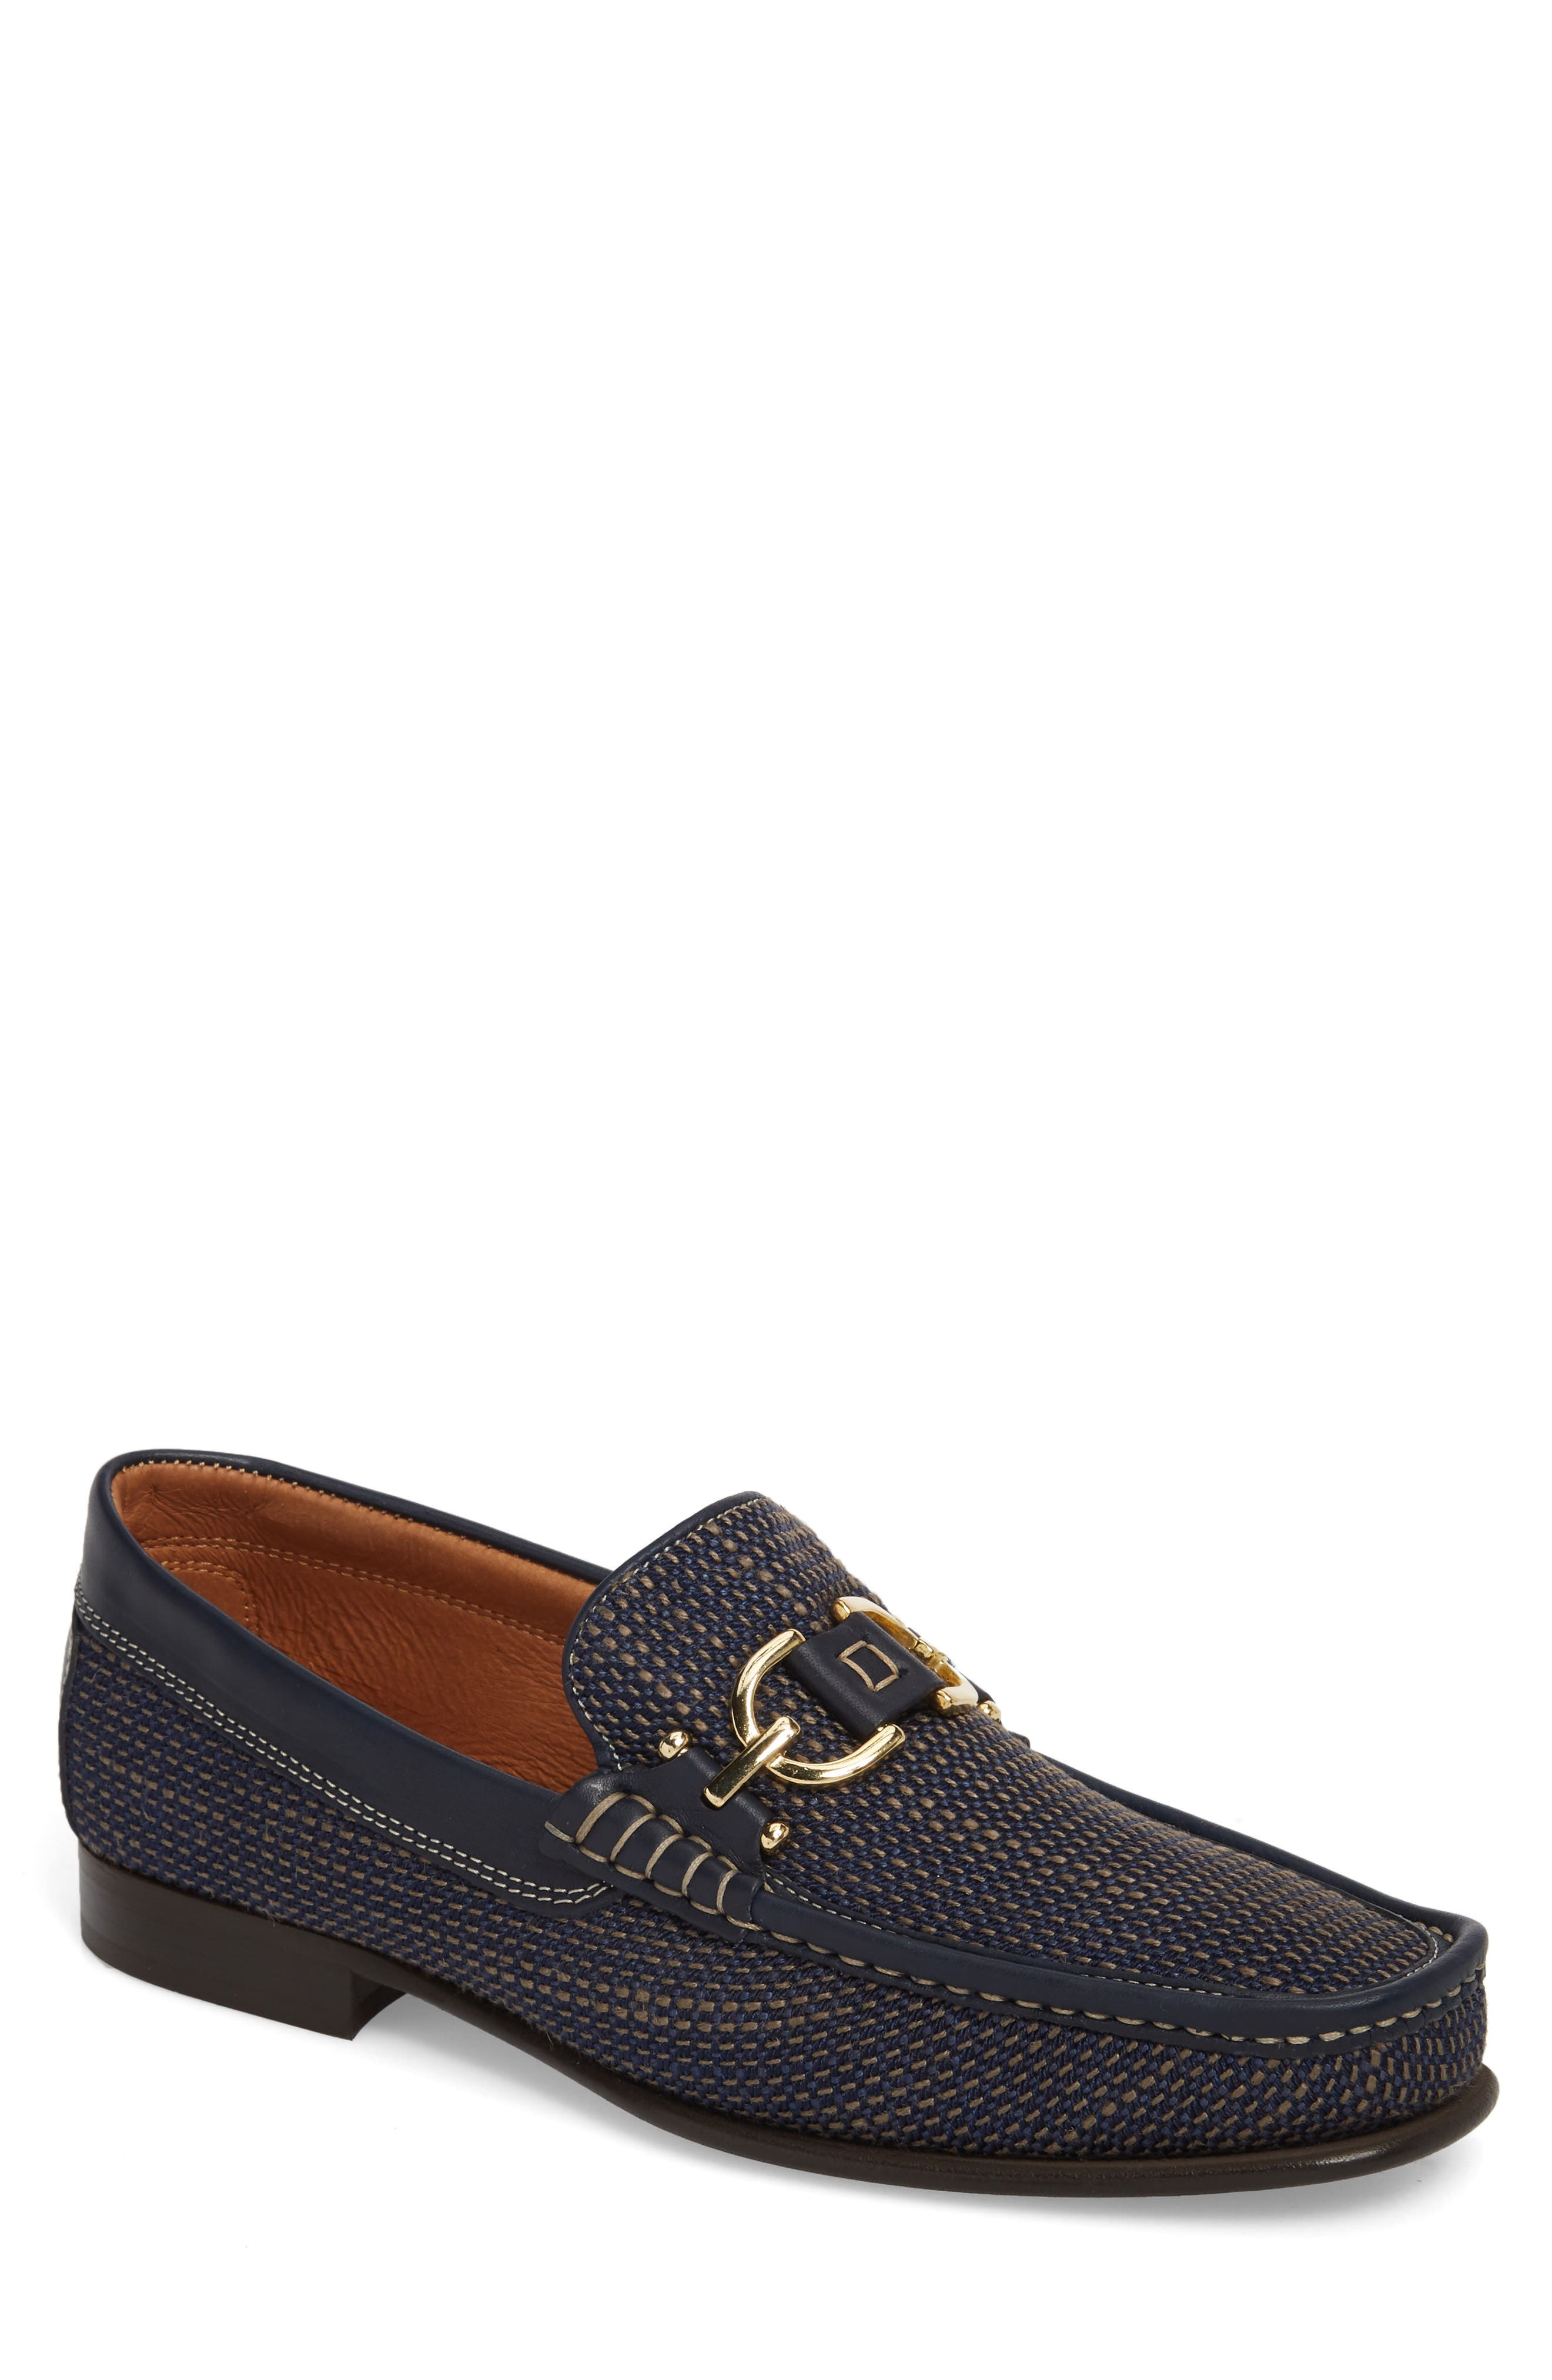 Dacio Woven Bit Loafer,                             Main thumbnail 1, color,                             Navy Leather